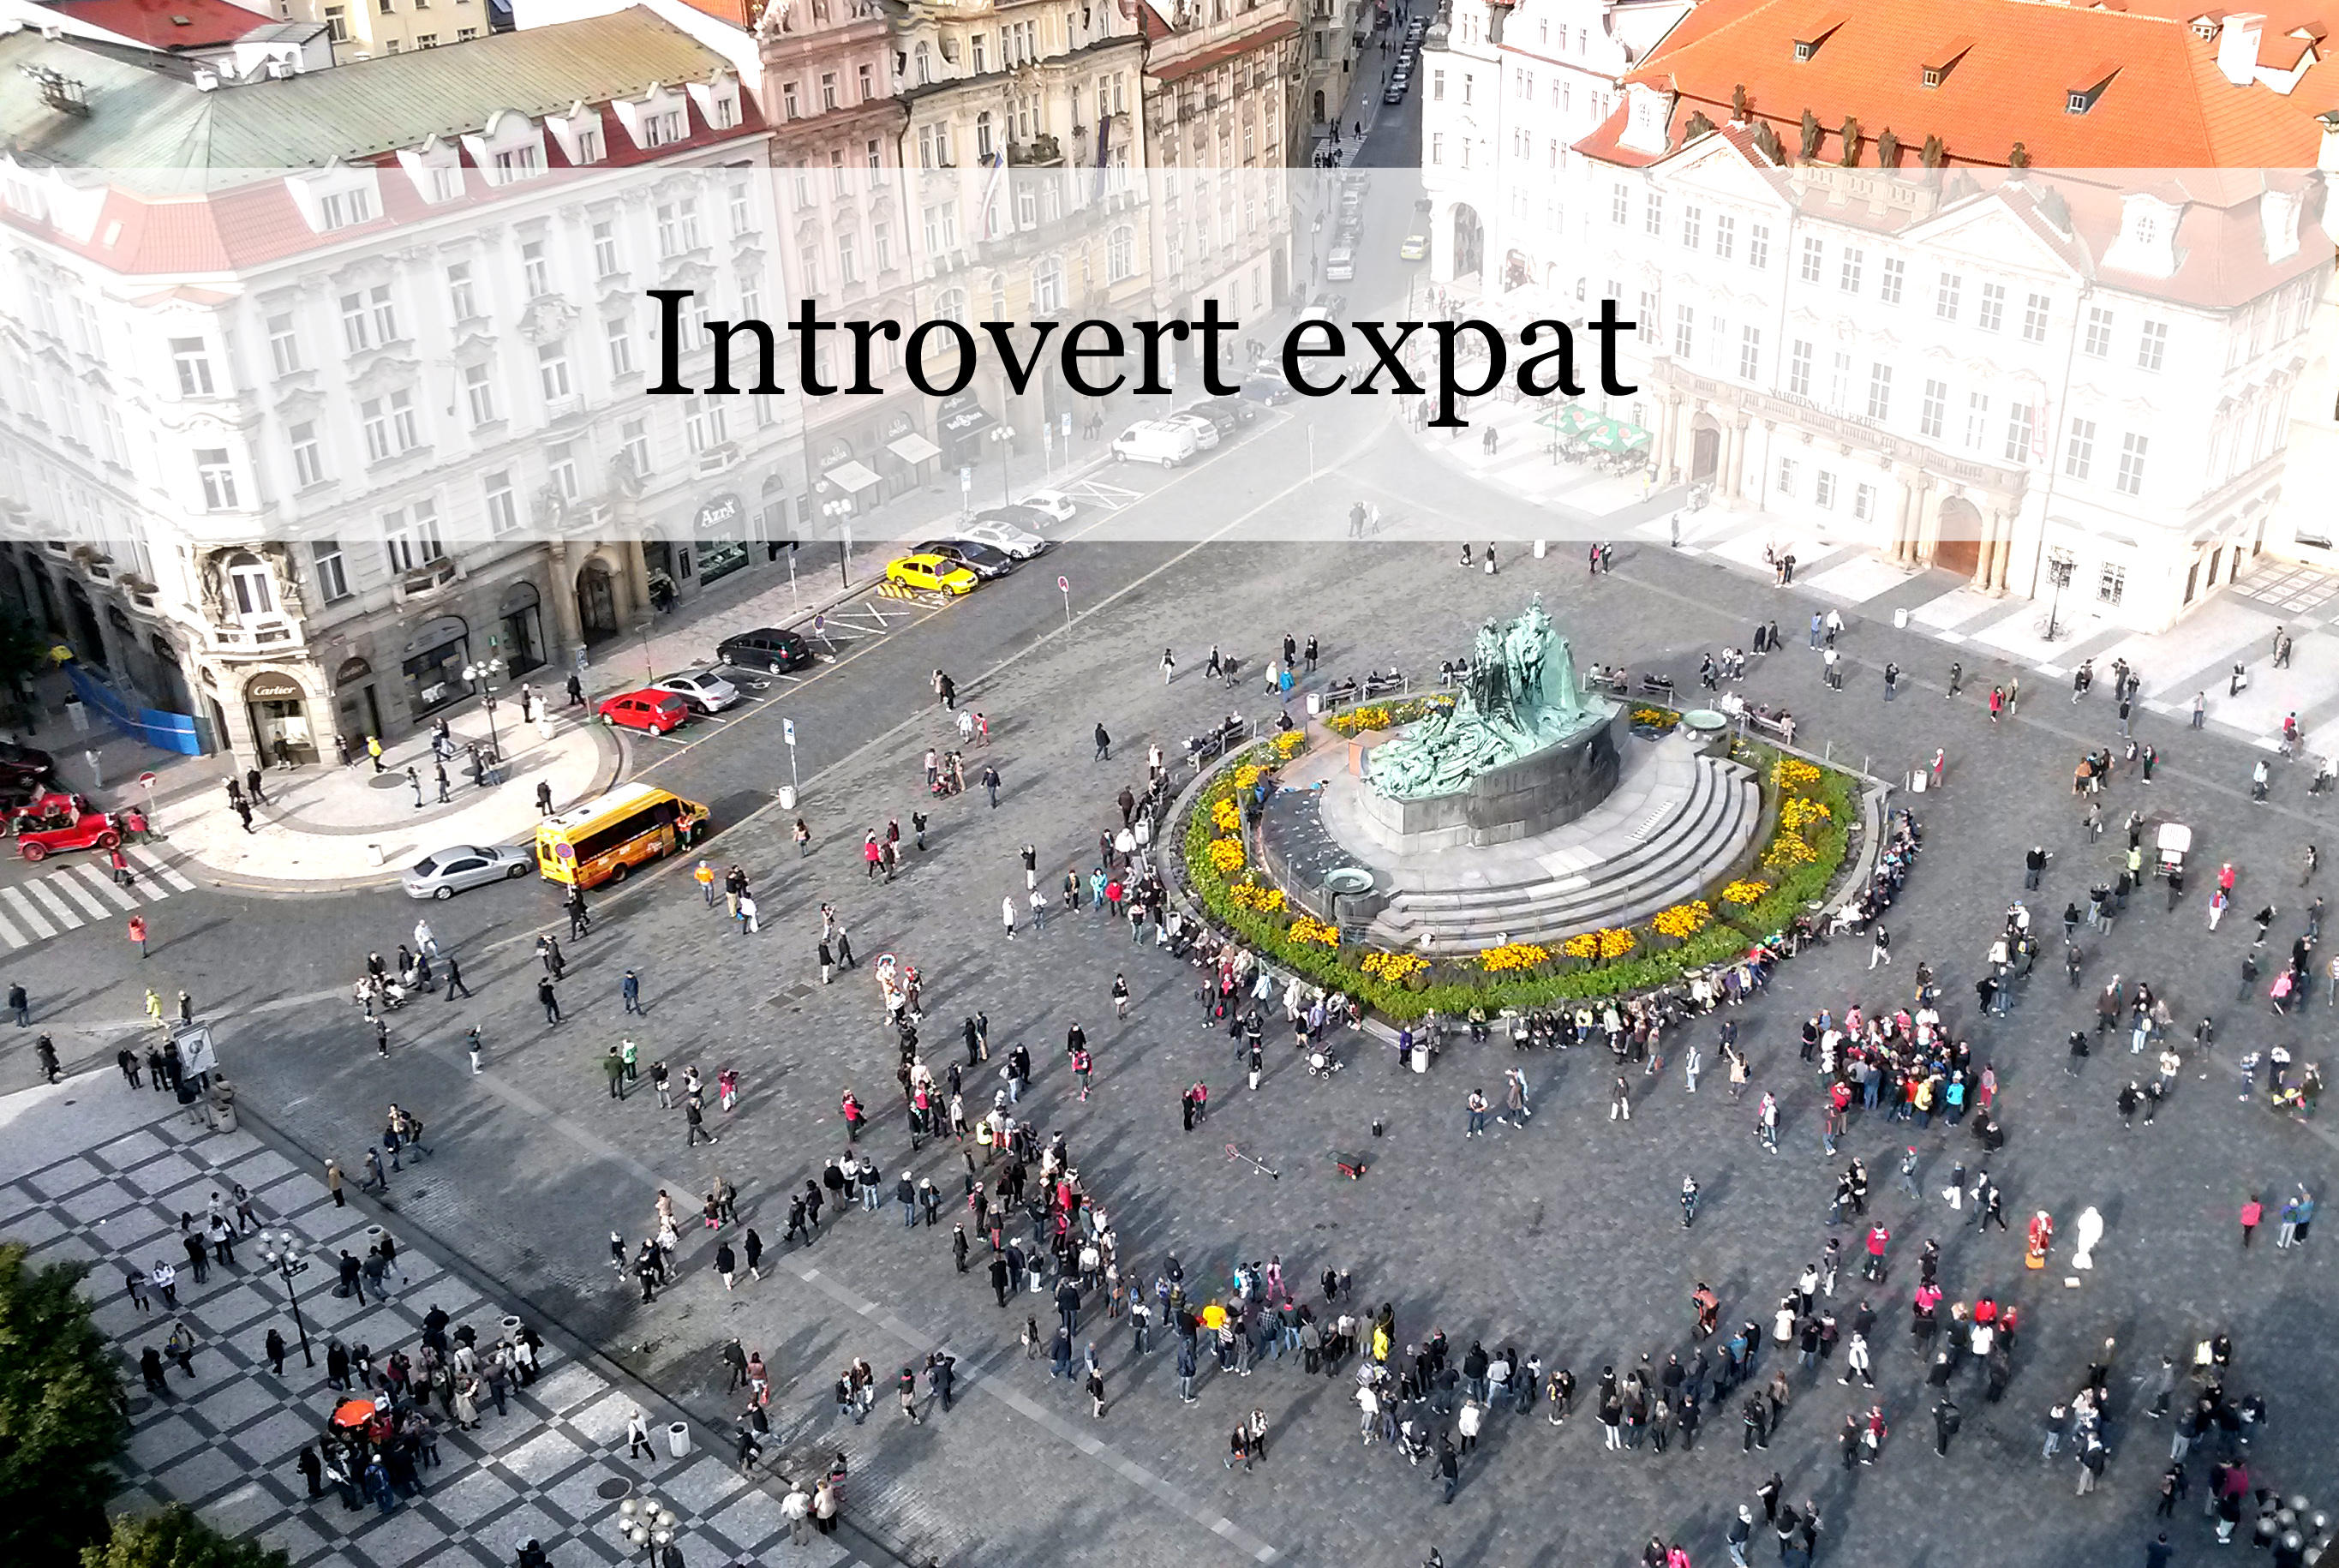 What's it like to be an introvert expat? | Project Abroad